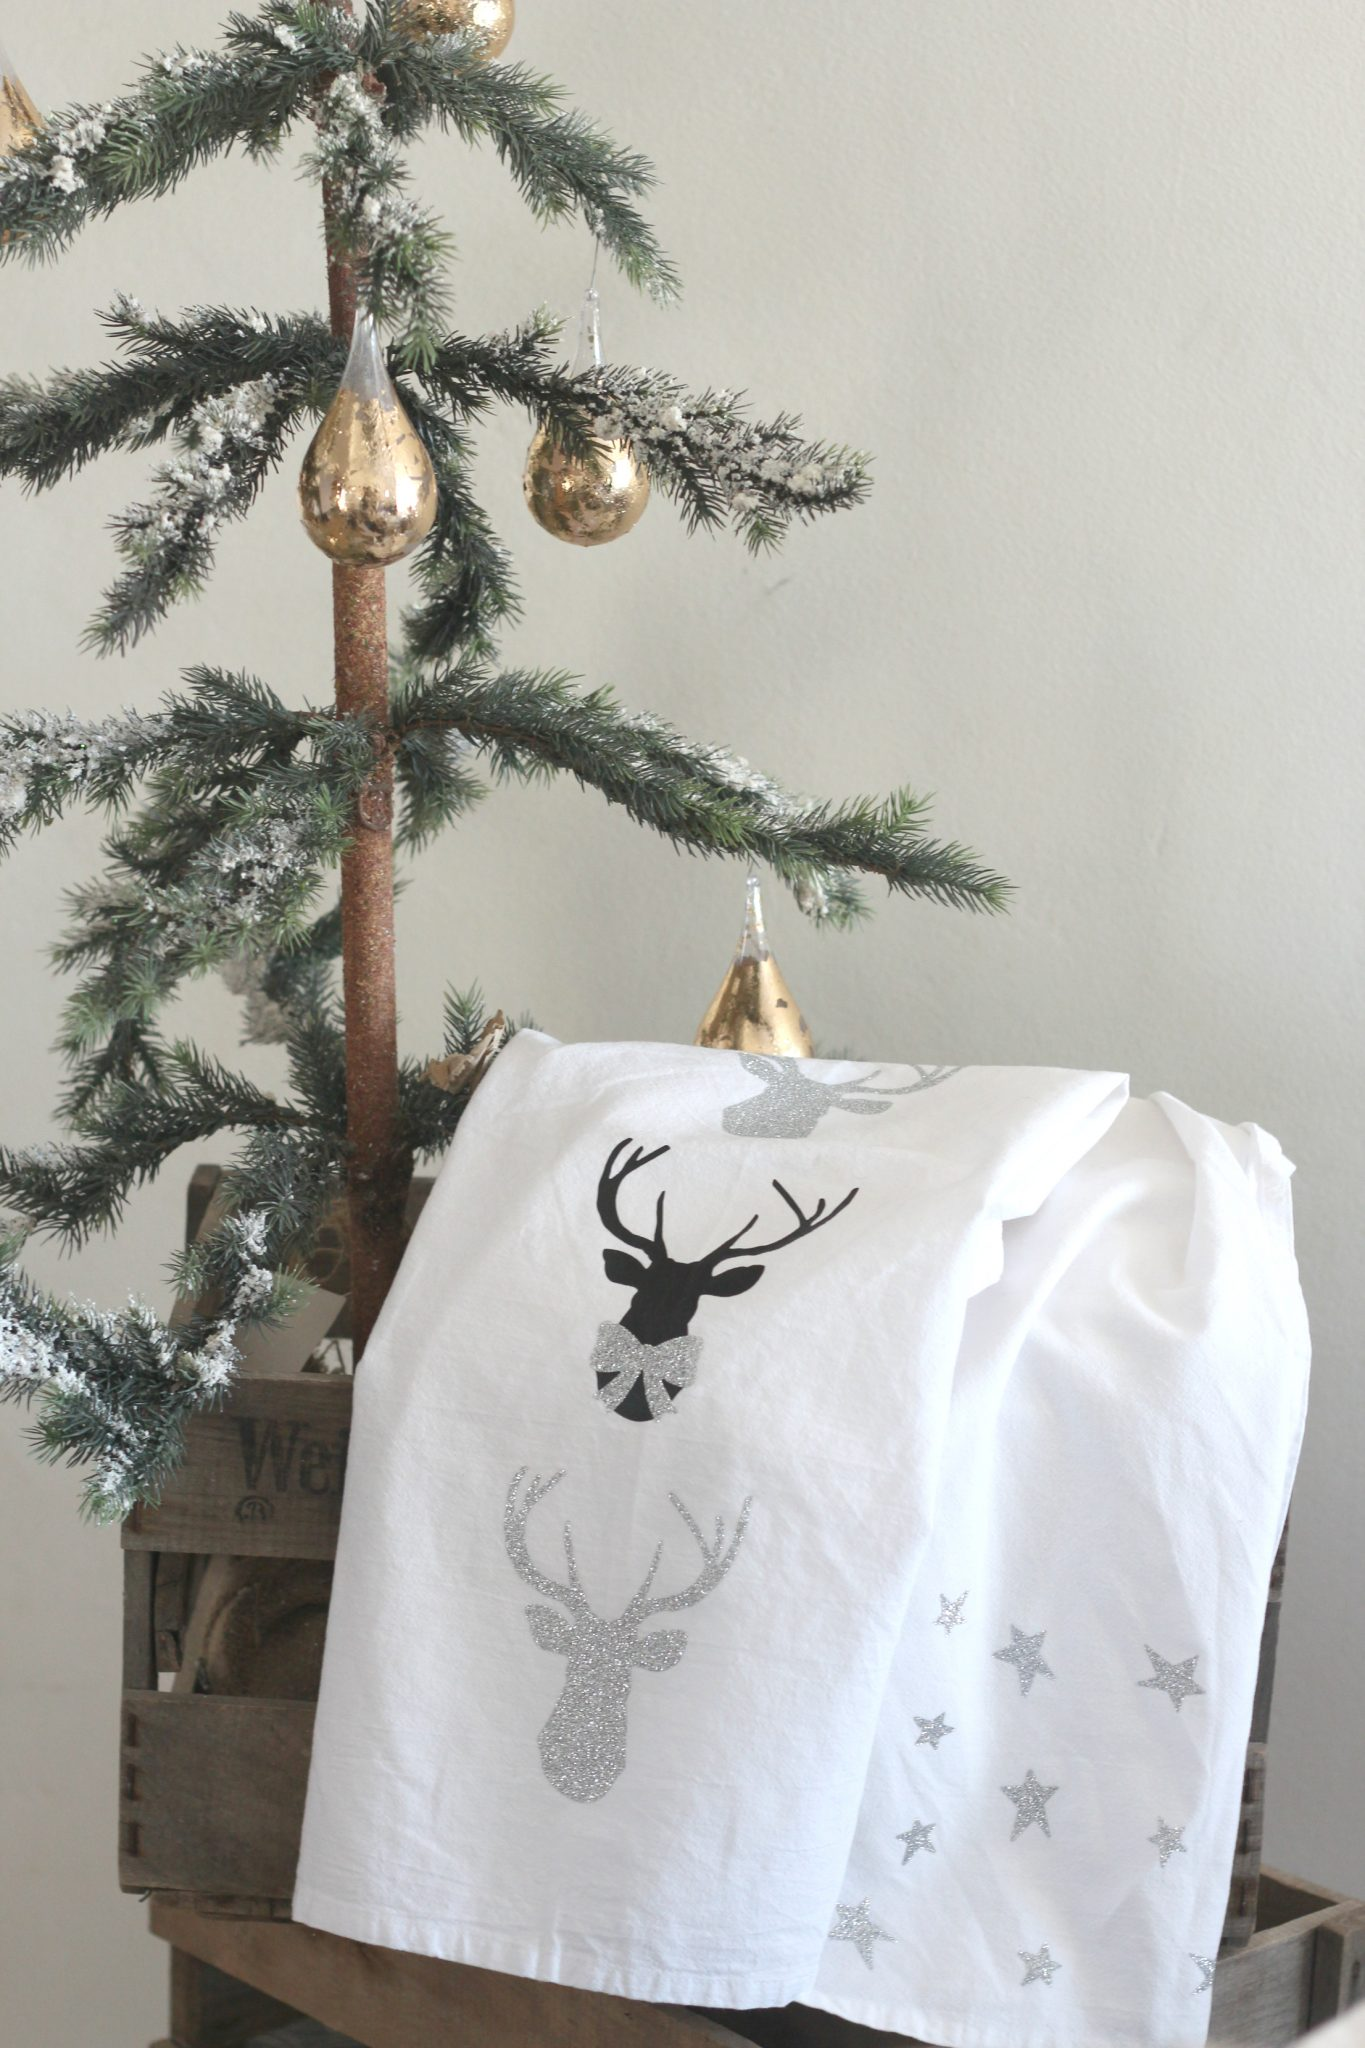 Sparkly Reindeer Tea Towels and Stars Tea Towels DIY for holiday gifting!